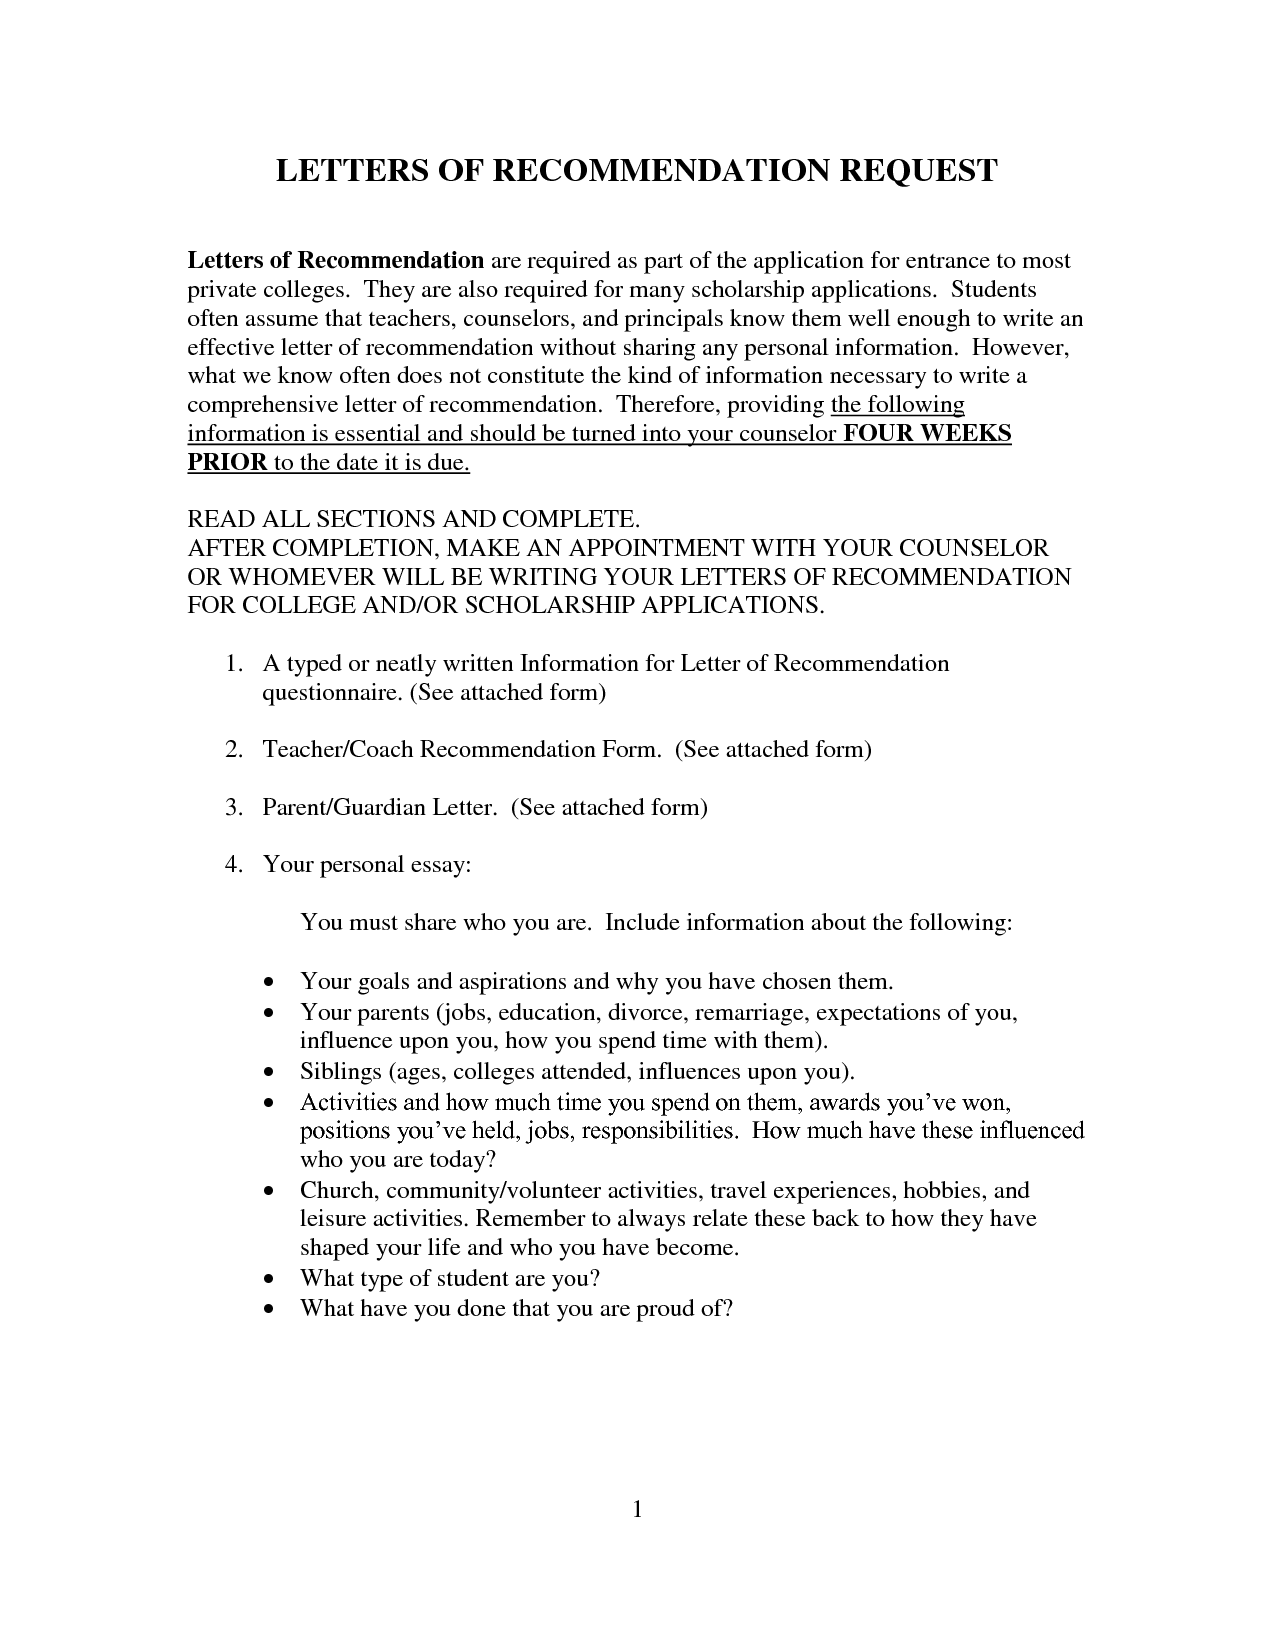 research recommendation sample pdf